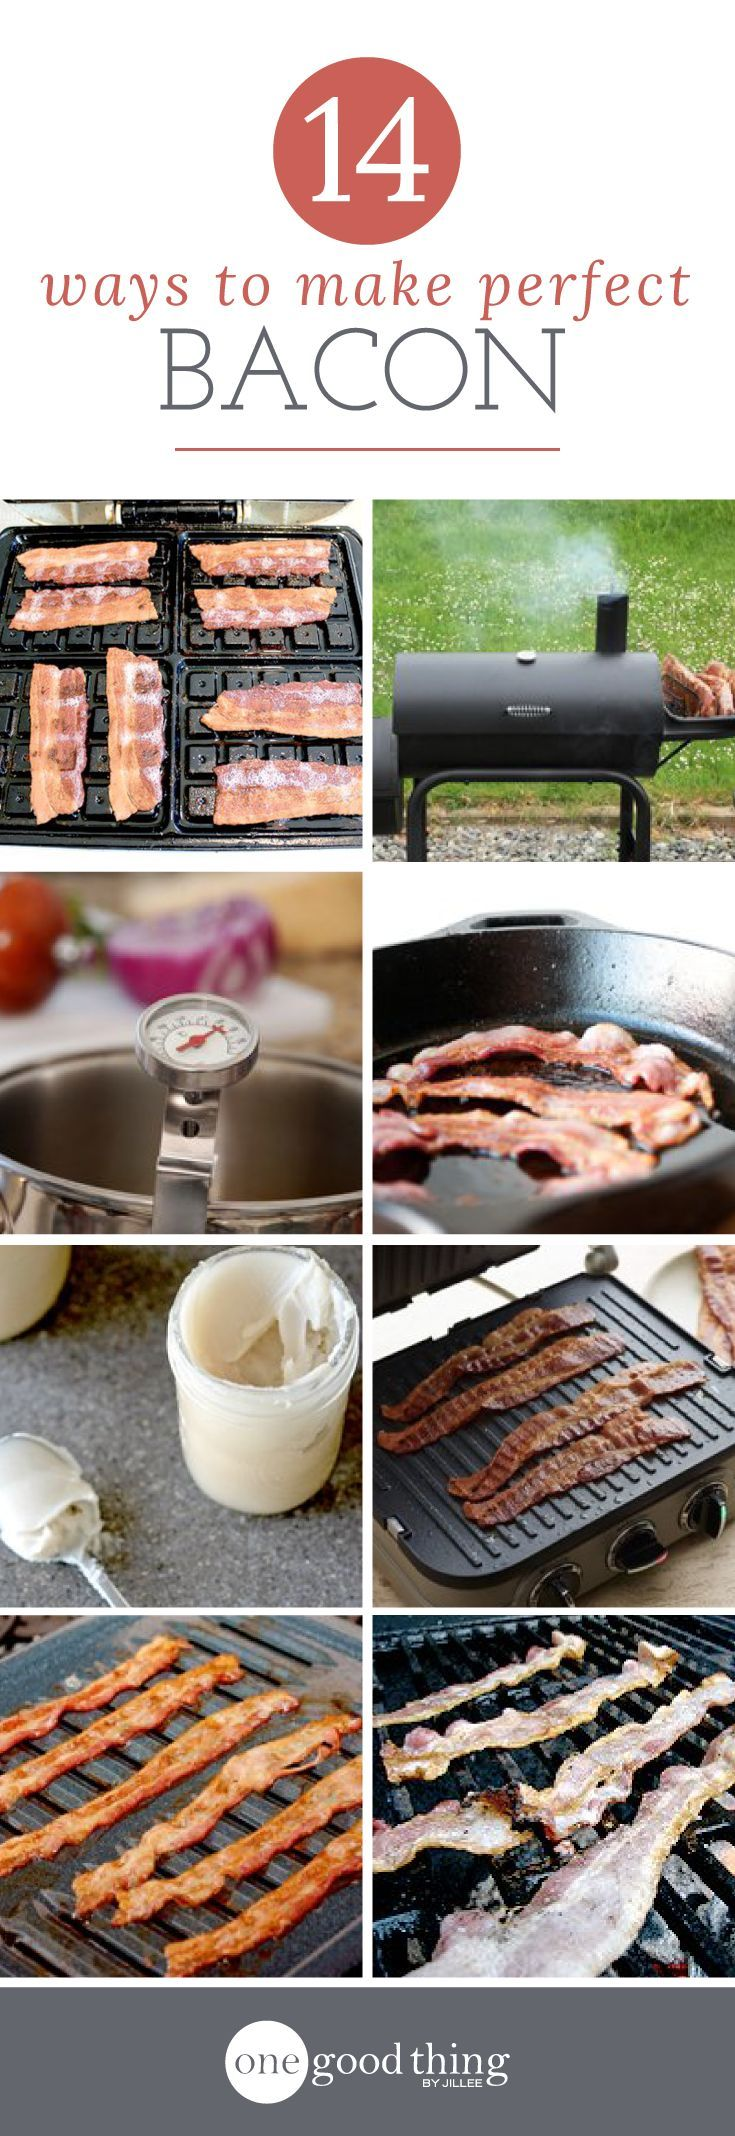 Some tips on how to cook in a slow cooker 15